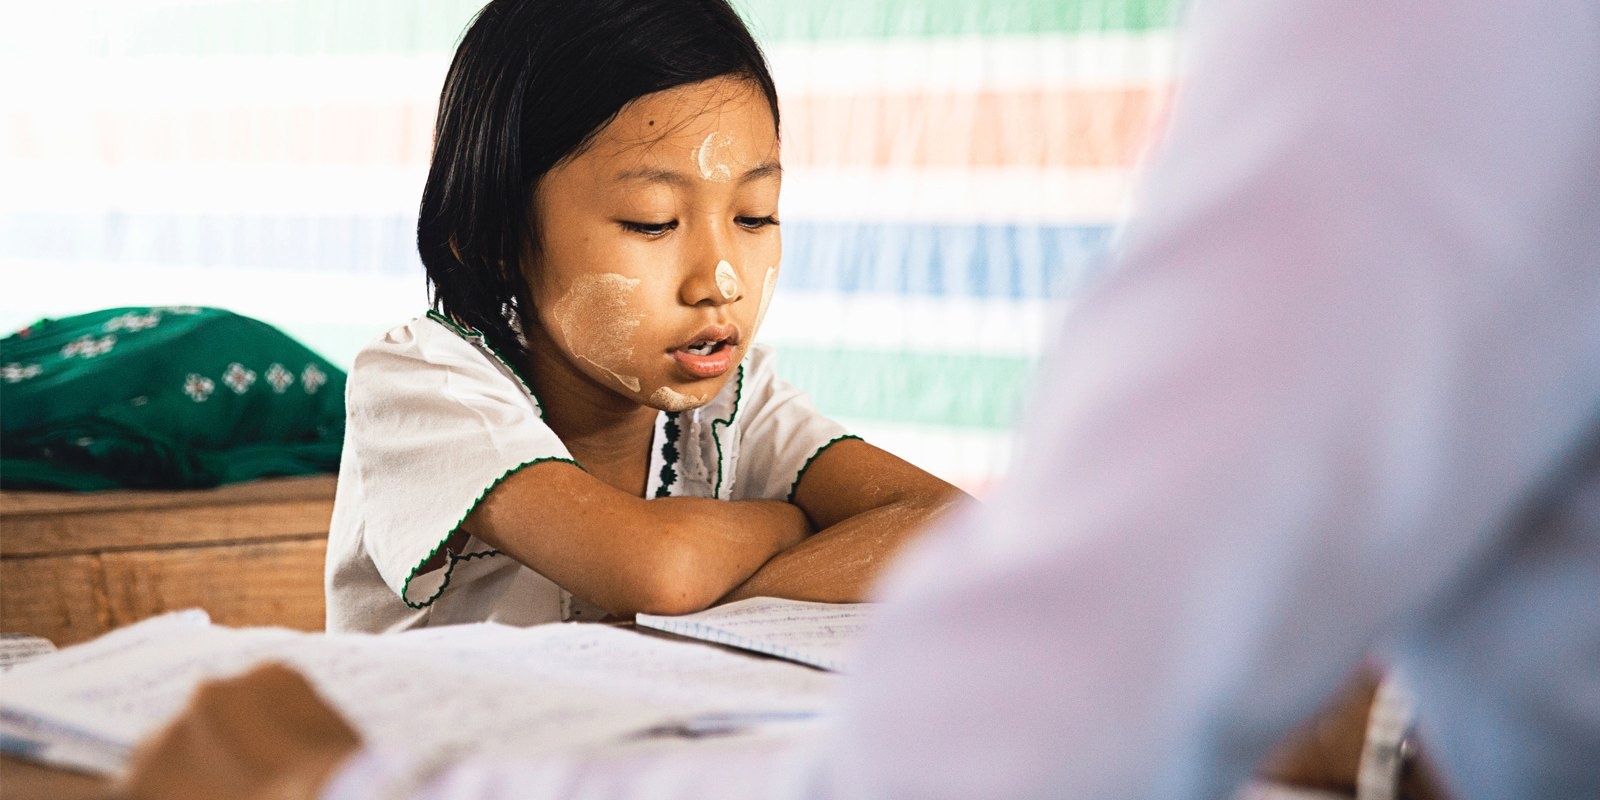 A child studying with a tutor